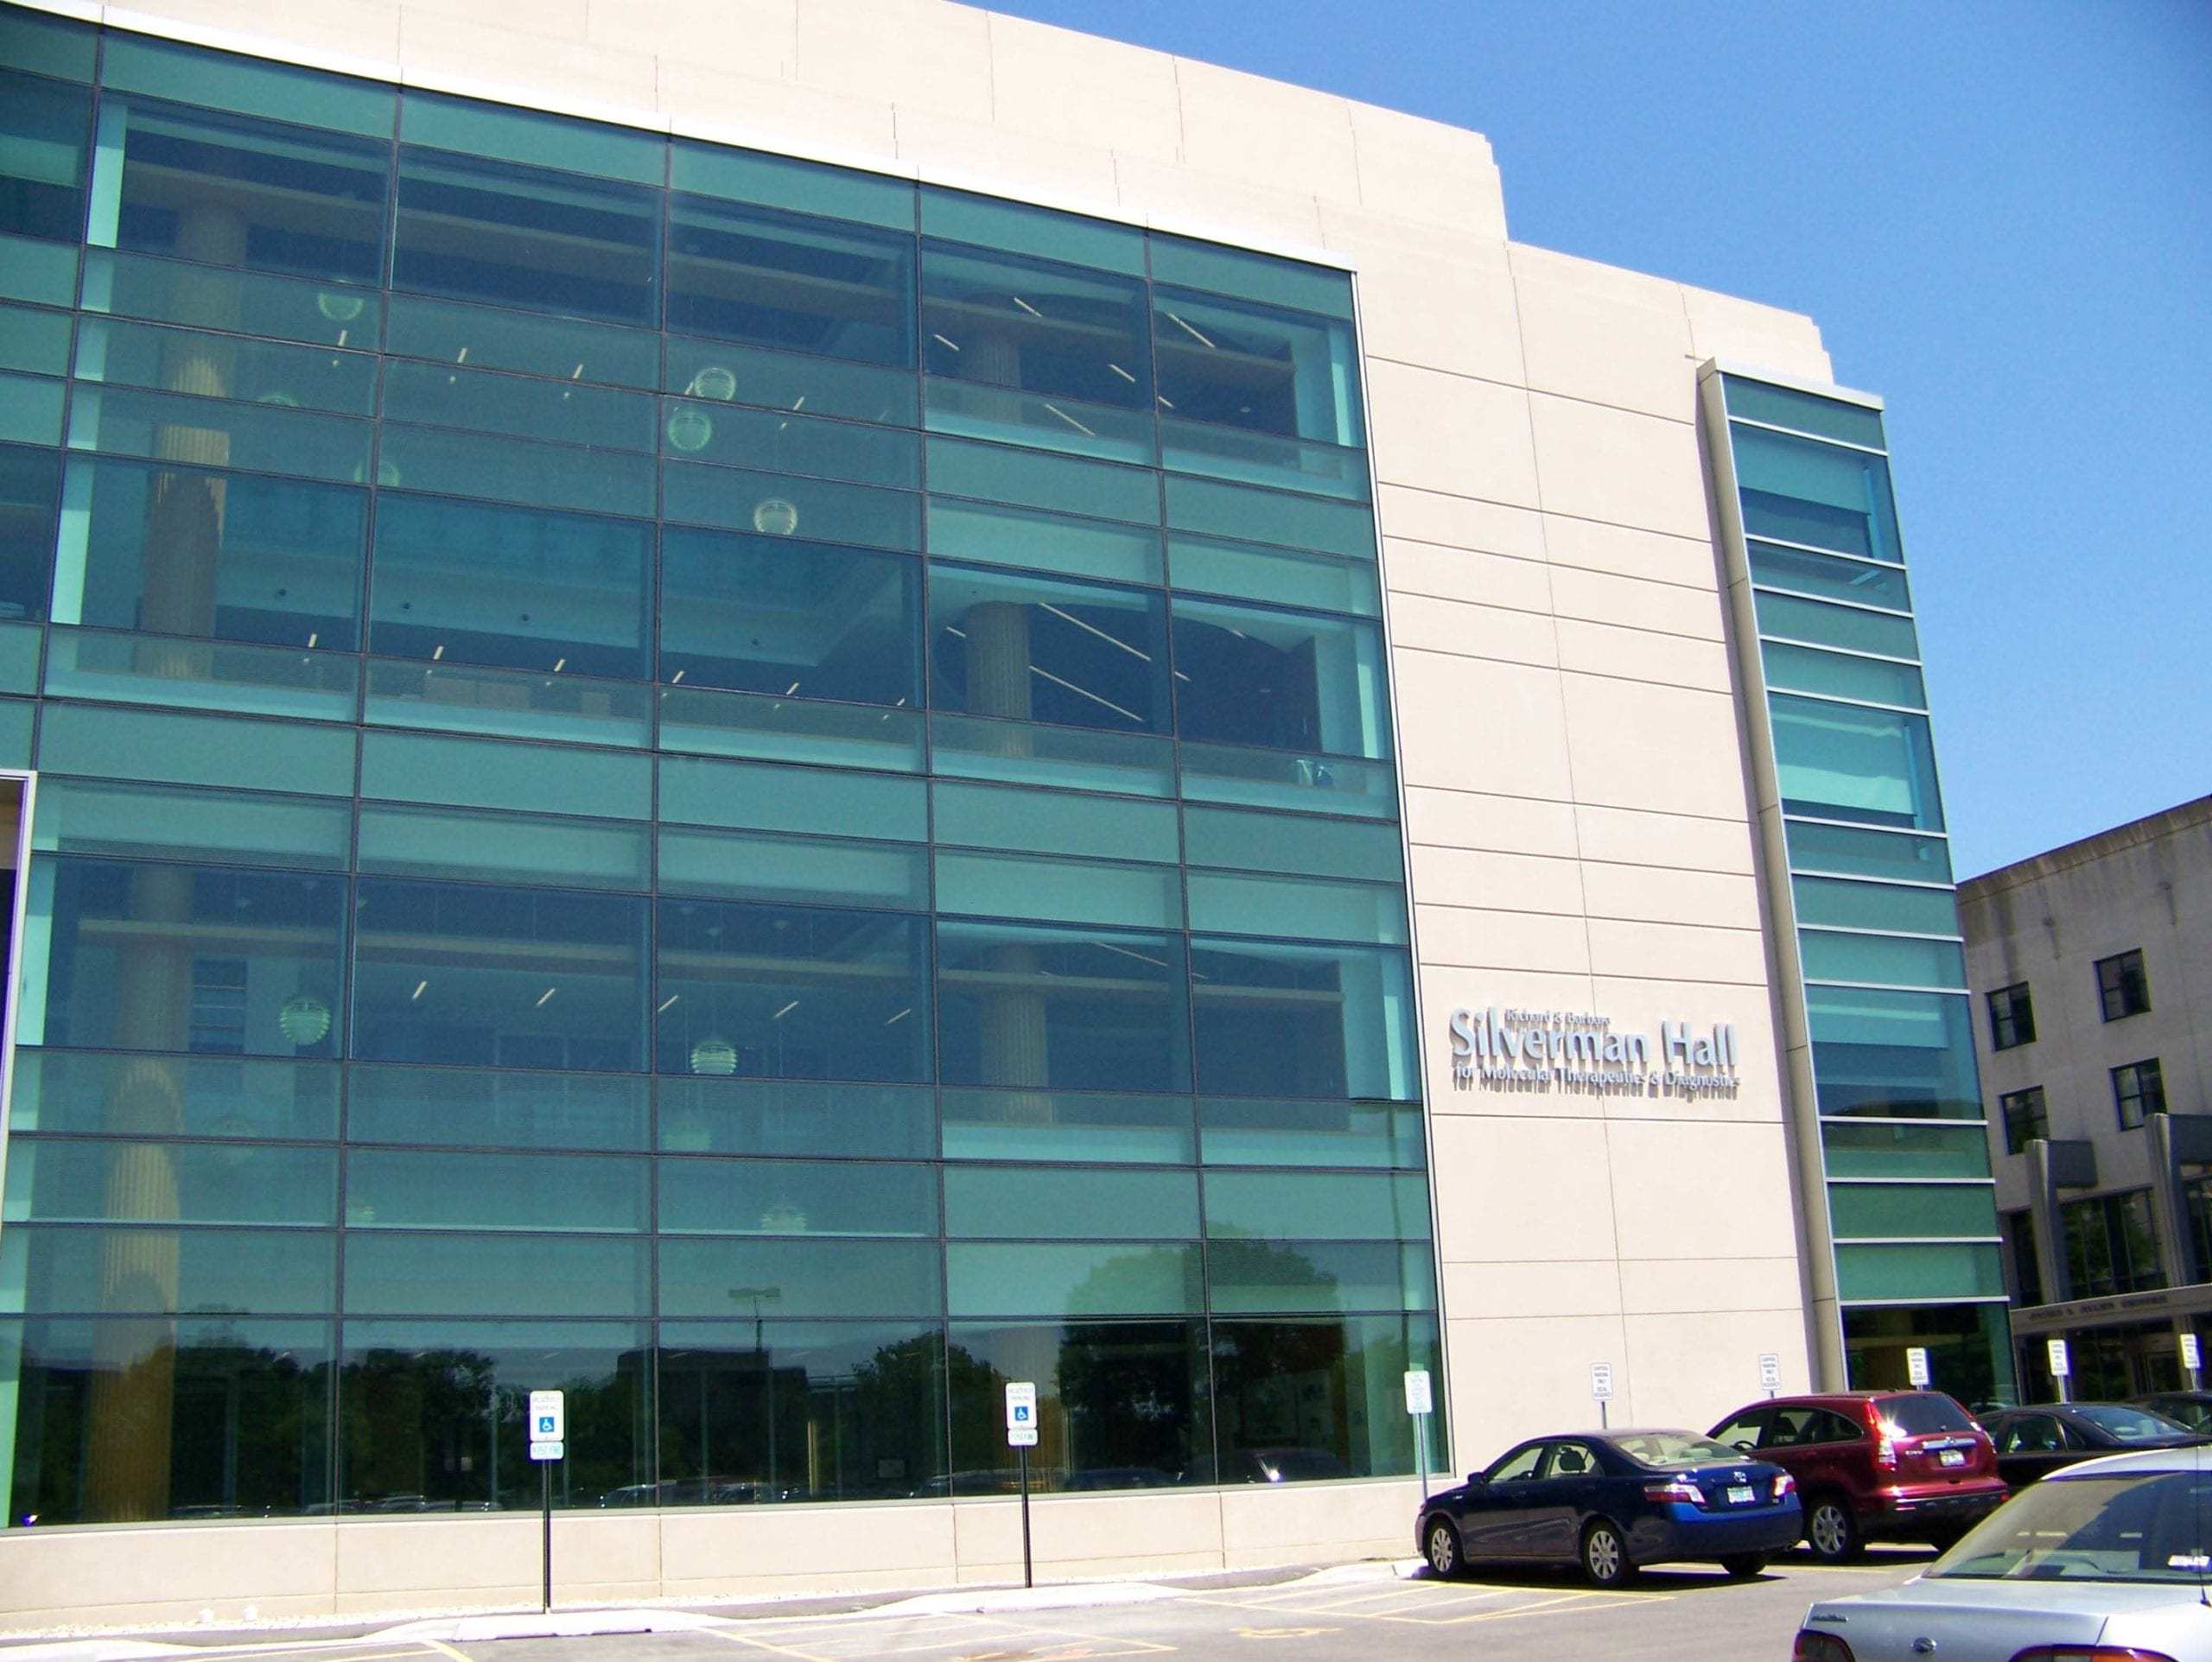 NU Silverman Hall - Construction Engineering | CSD Structural Engineers